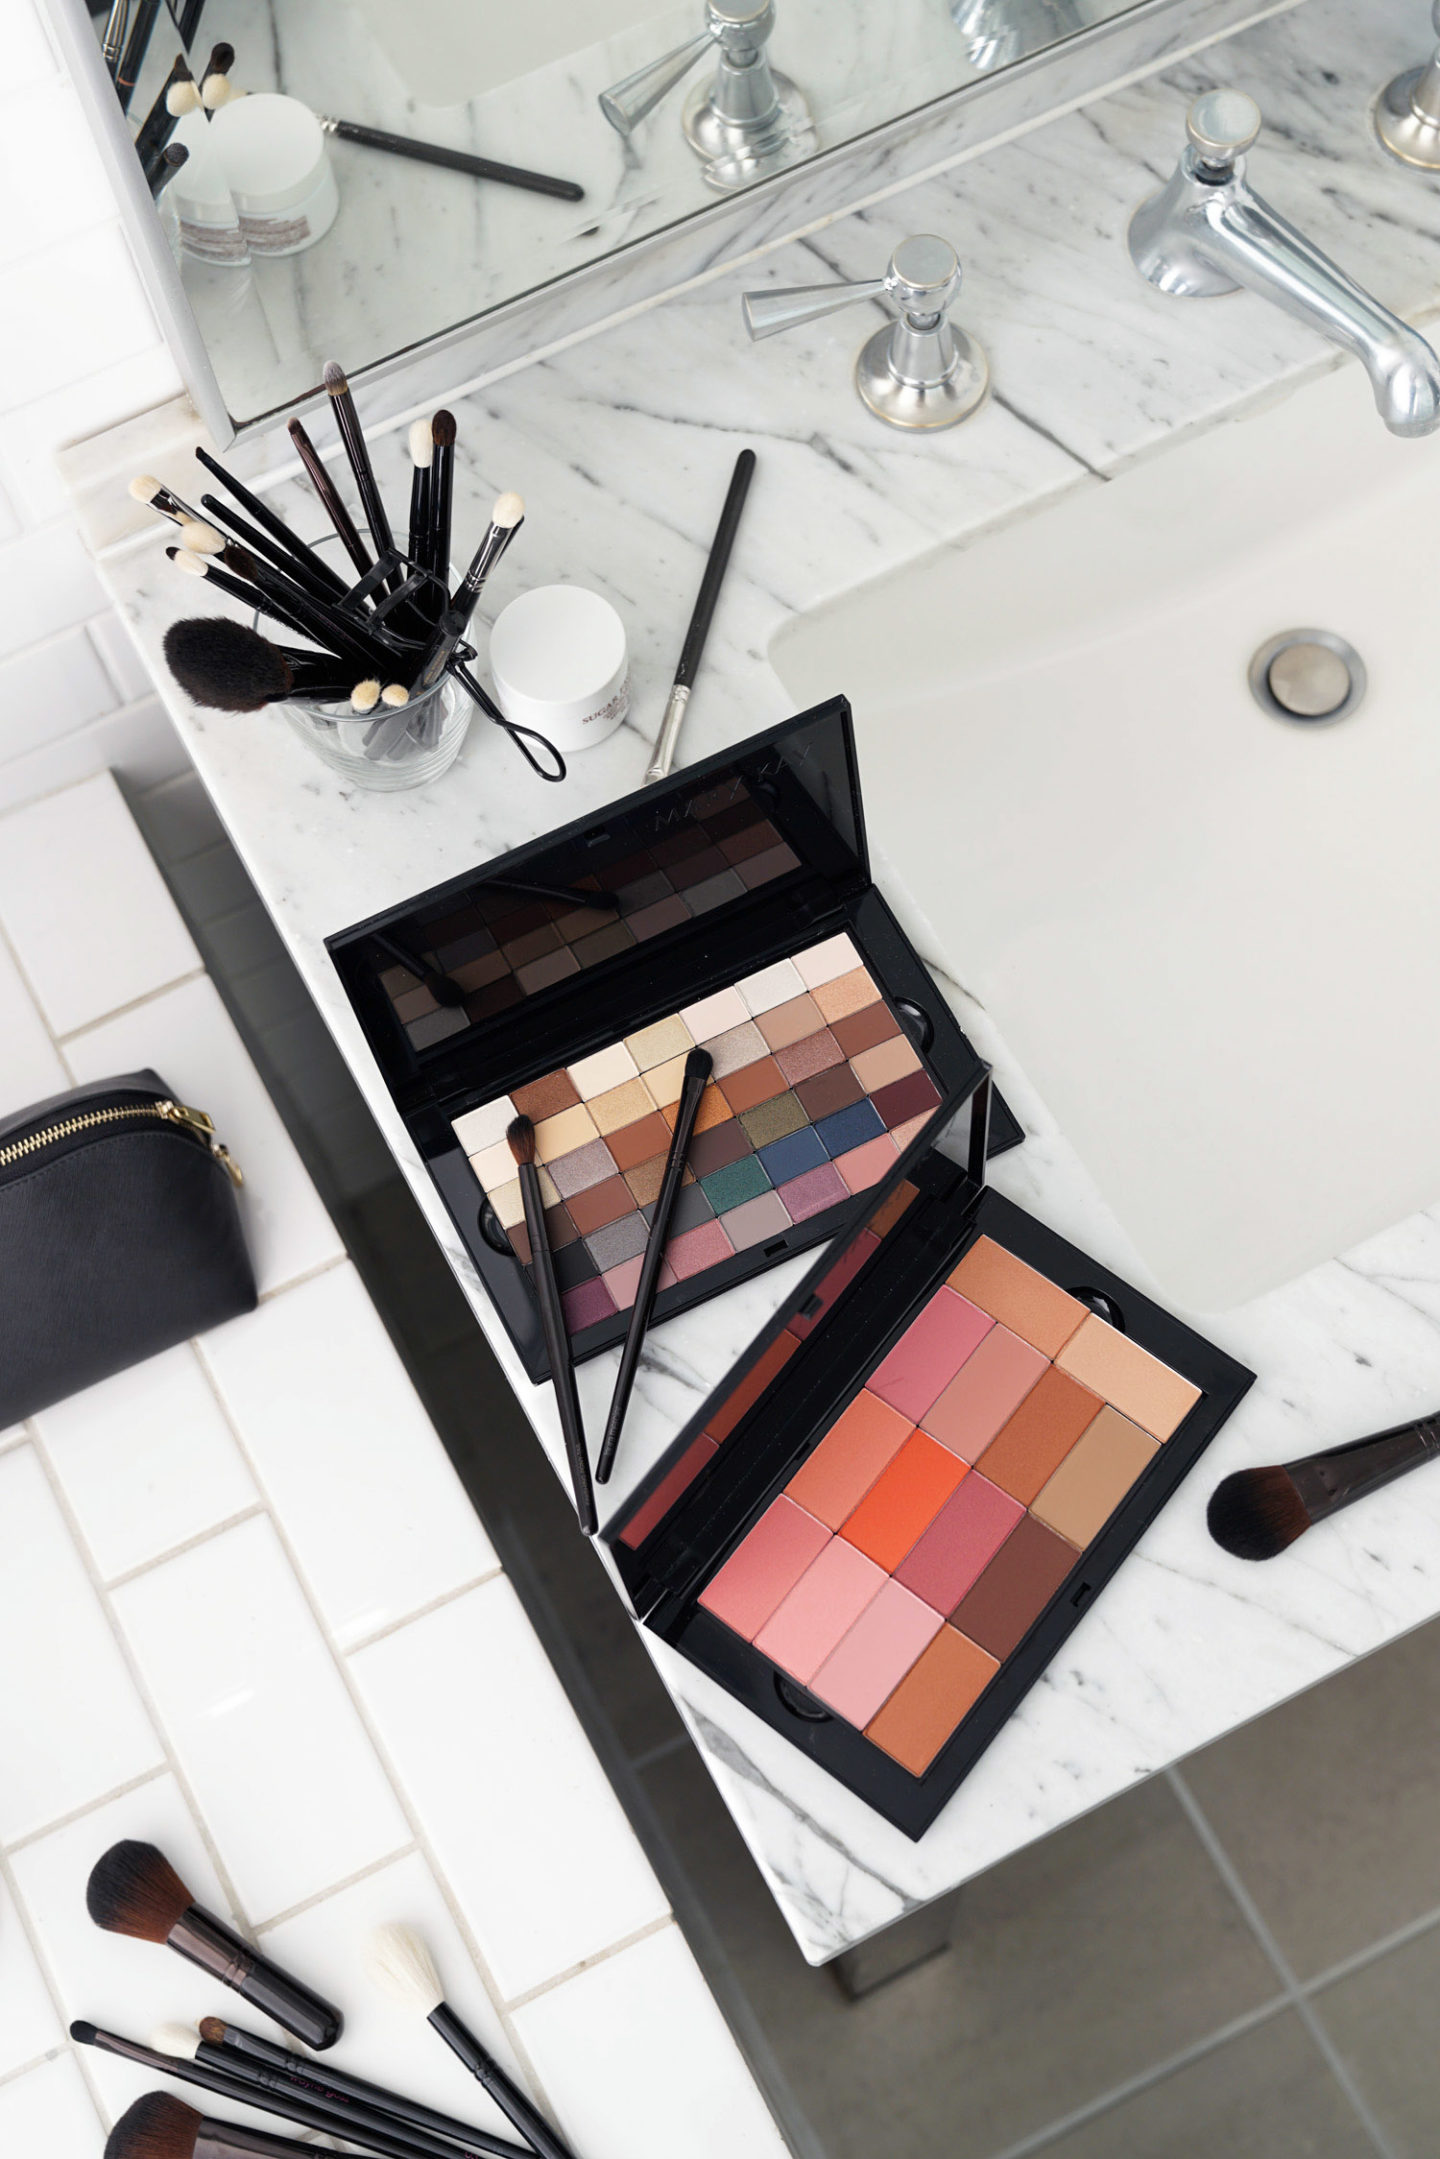 Mary Kay Chromafusion Pro Palette Review, Eyeshadow, Contour, Highlighter and Blush